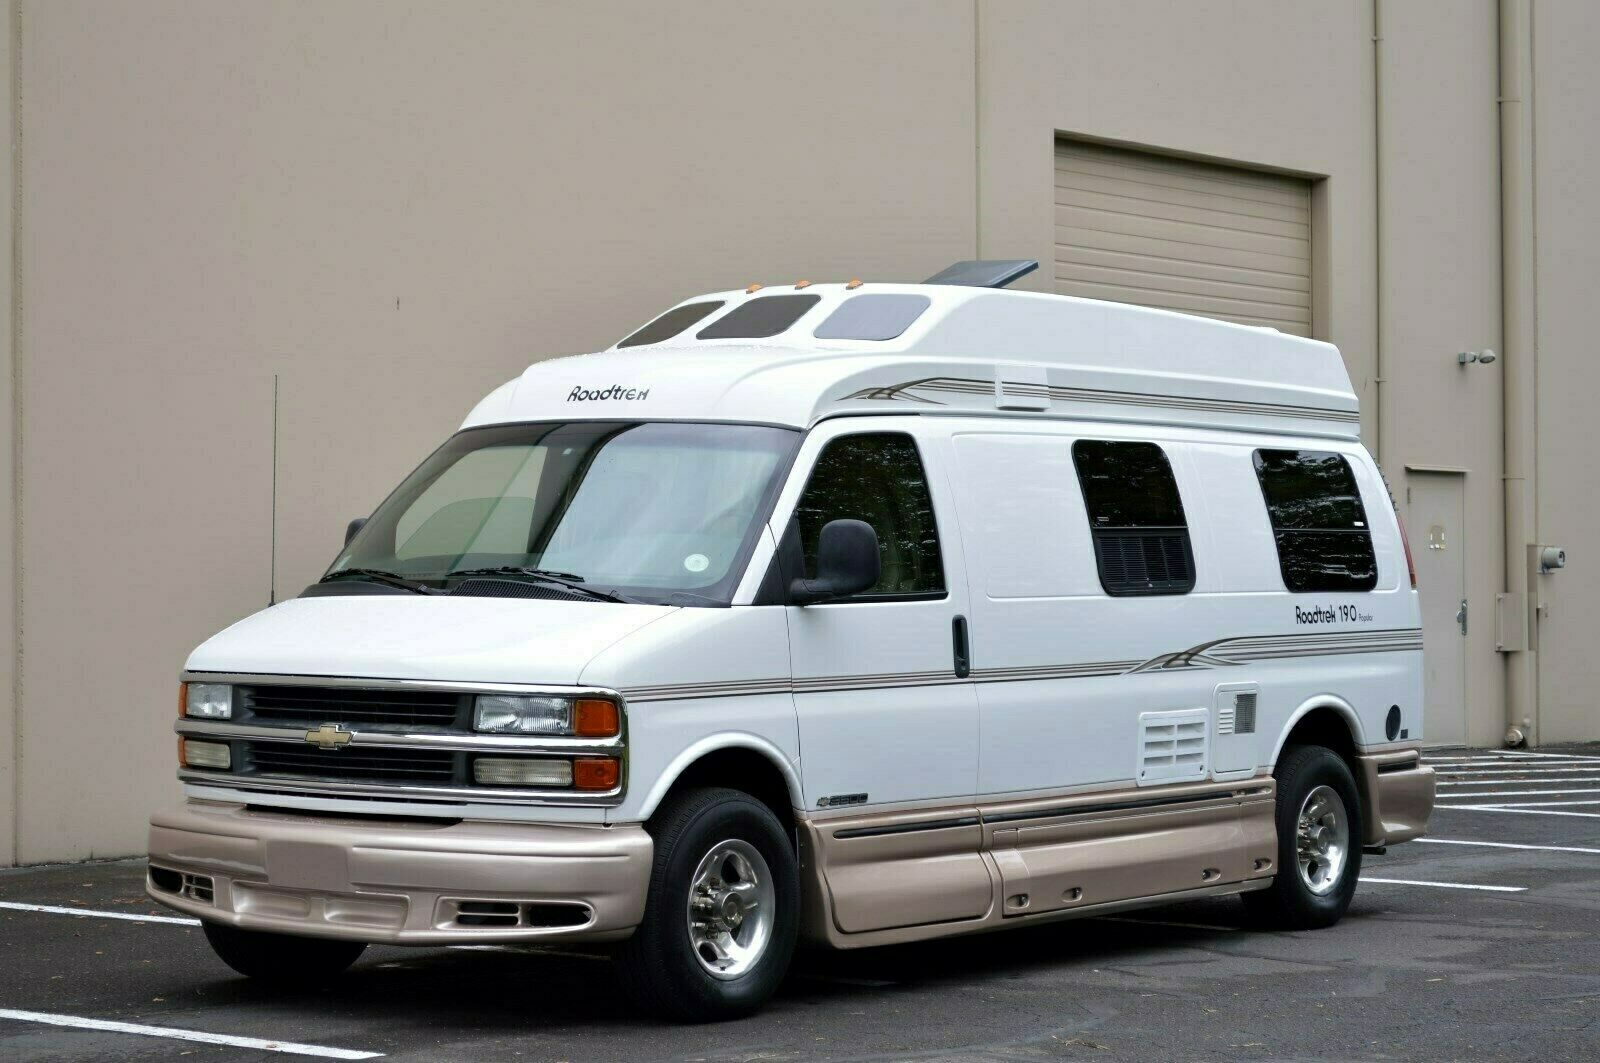 low miles 2002 Roadtrek 190 POPULAR camper for sale